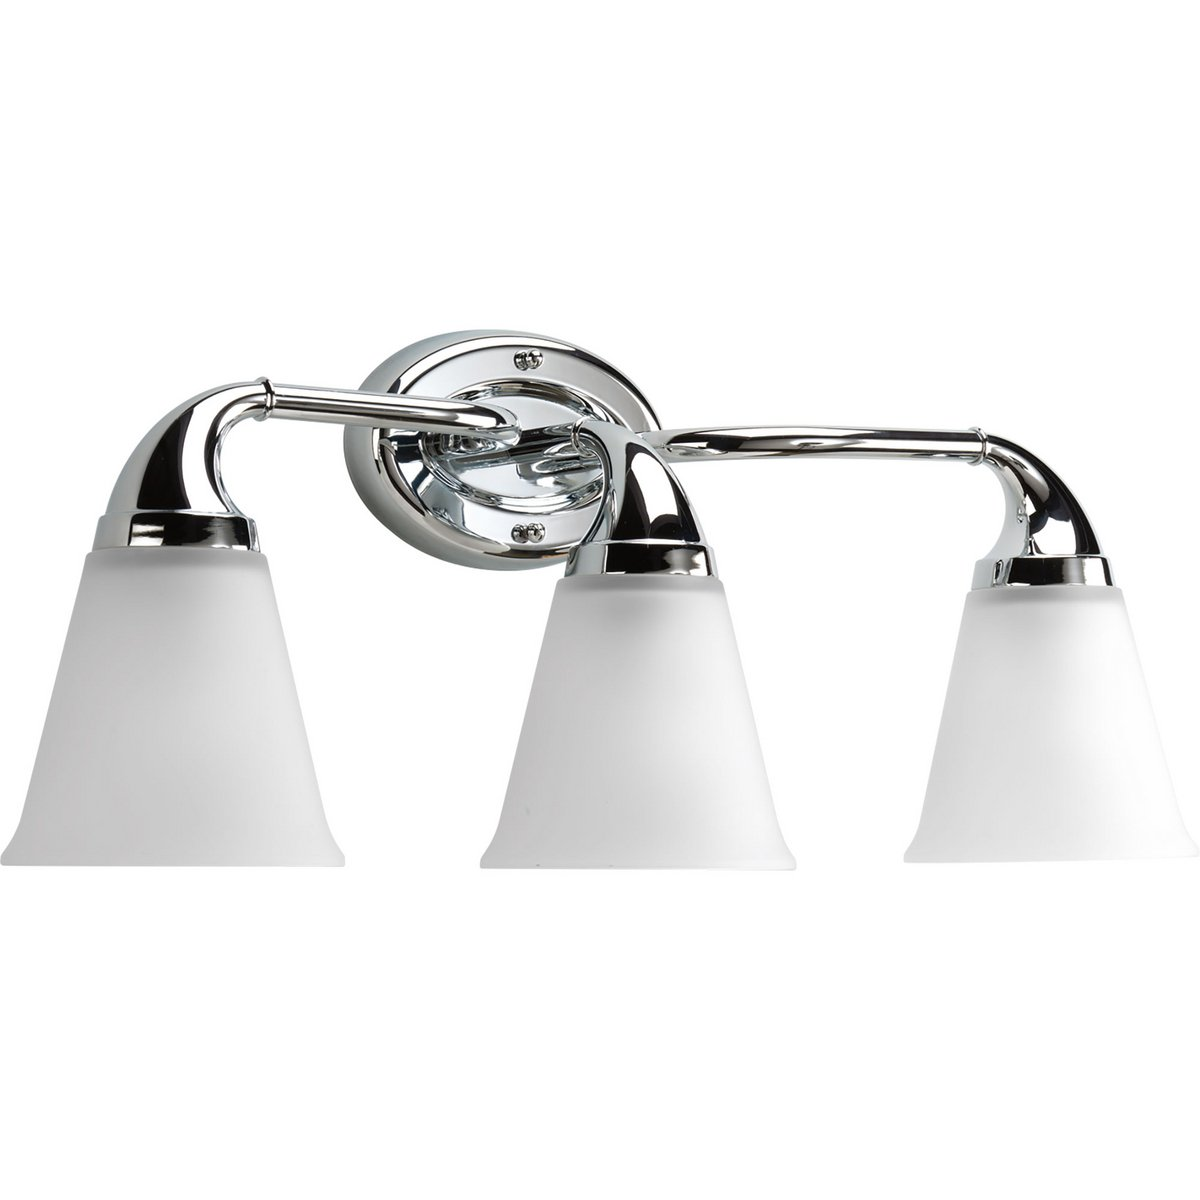 Progress Lighting P2760-15 3-Light Bath Which Mounts Up Or Down, Polished Chrome